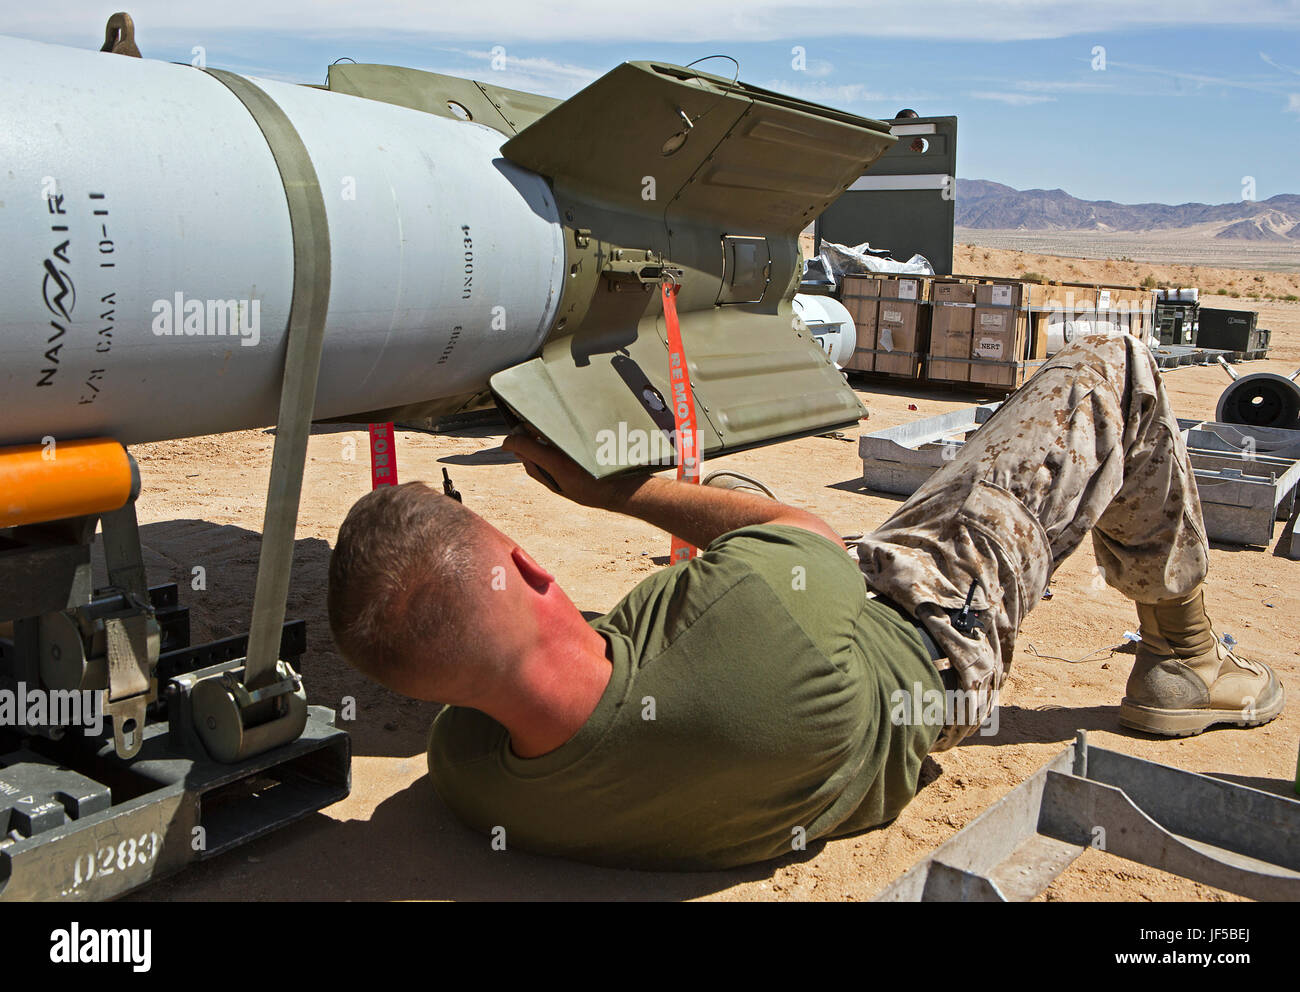 Marines with 3rd Marine Aircraft Wing assemble ordnance during Integrated Training Exercise (ITX) 3-17 at Marine Stock Photo